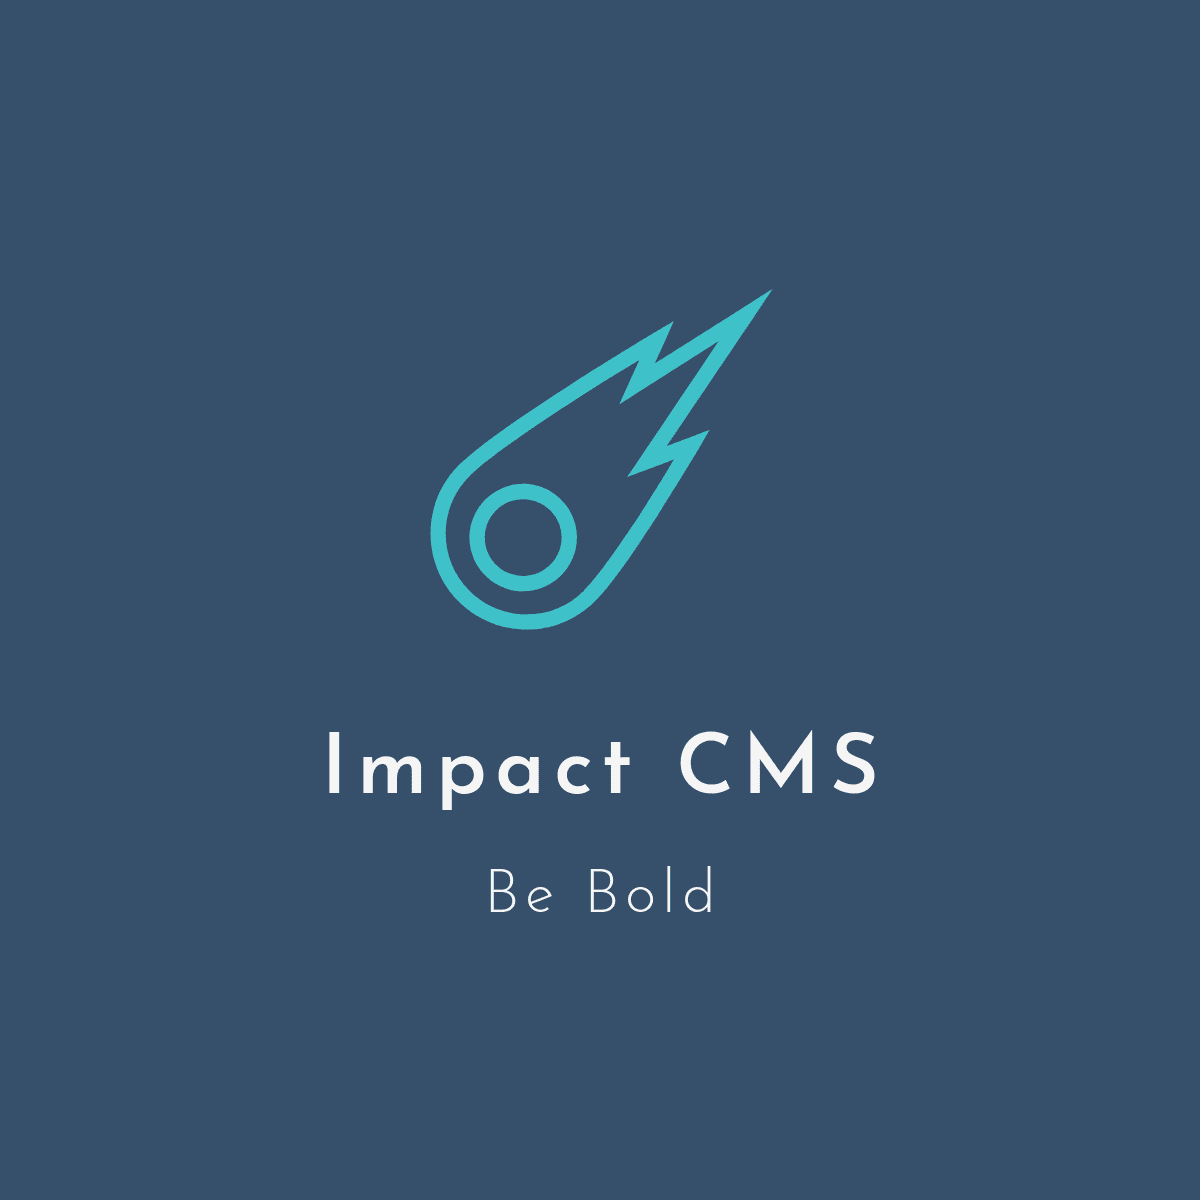 Impact CMS logo, meteor heading in a downward direction quickly